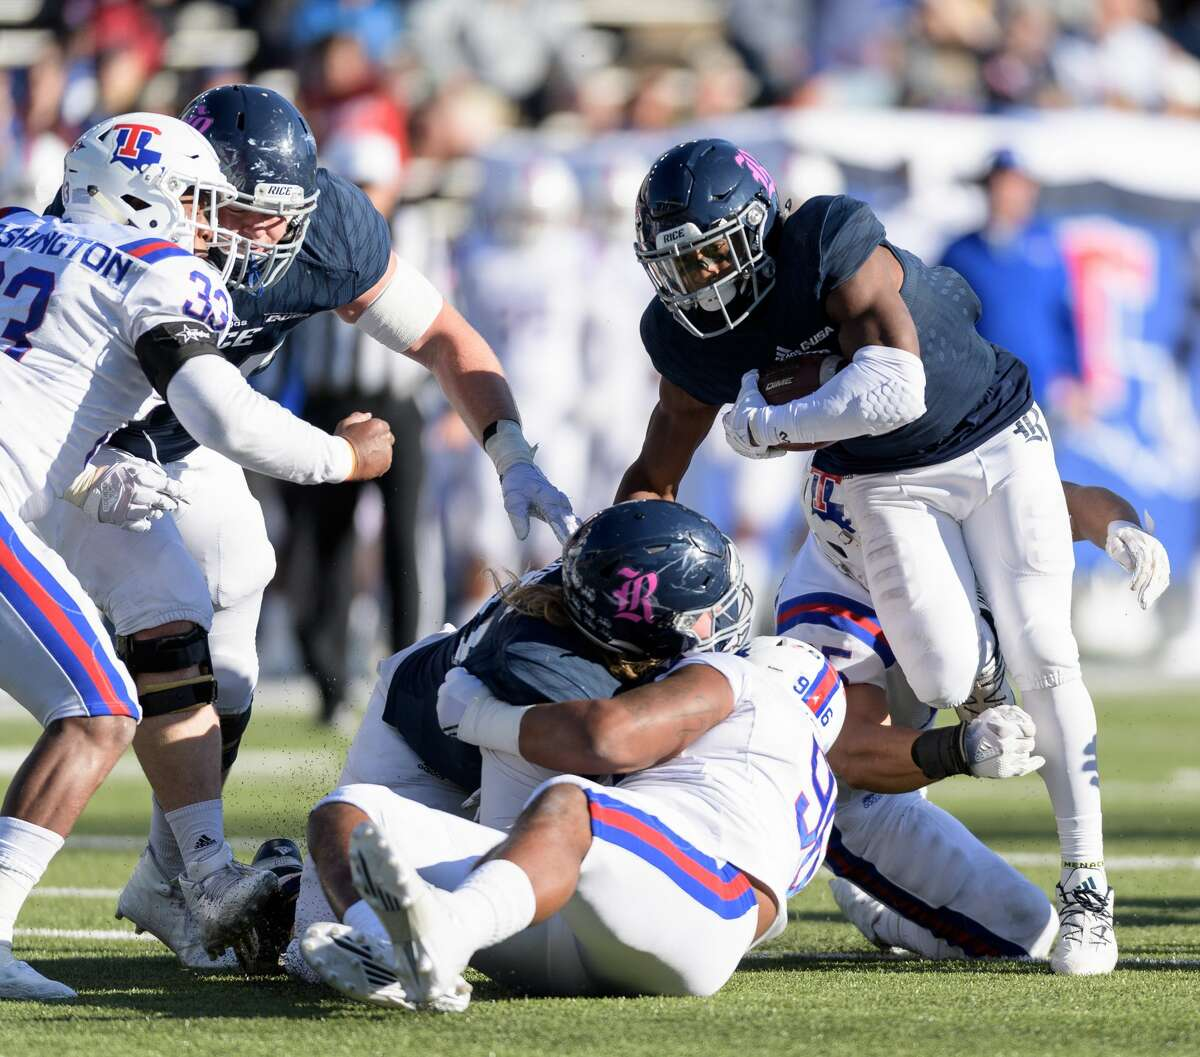 Austin Walter (2) of the Rice Owls is one of five FBS players this season who has rushing and receiving gains of at least 70 yards.